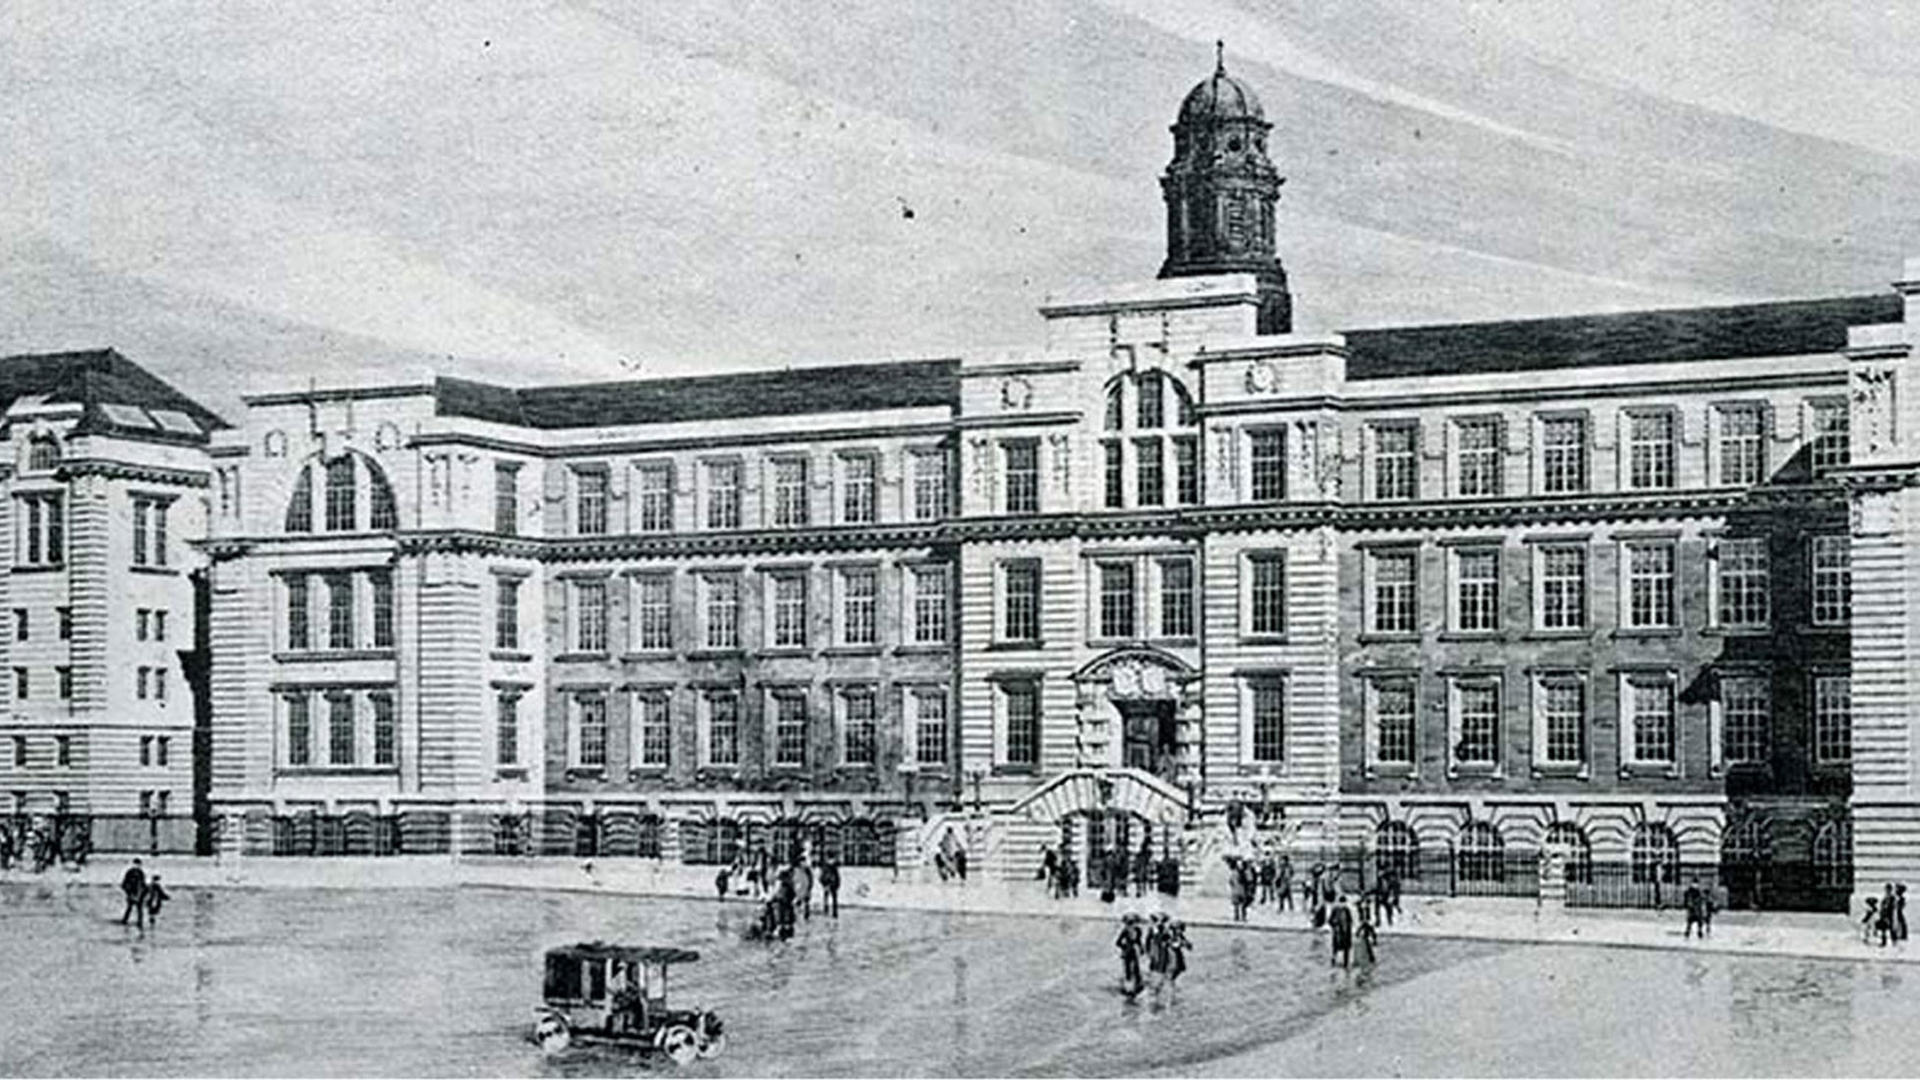 The college building on Park Place in 1932